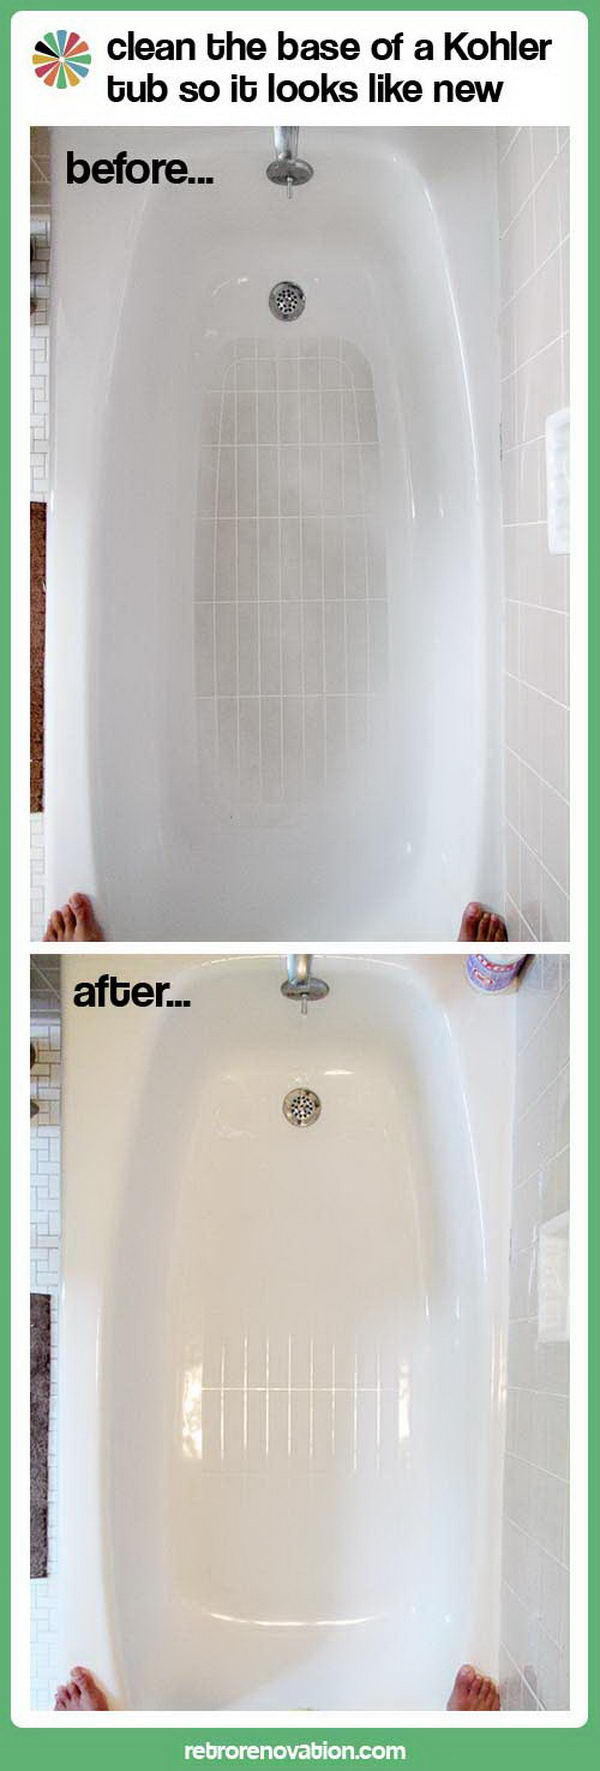 Bathroom cleaning tips and tricks hative for How to clean a bathroom step by step